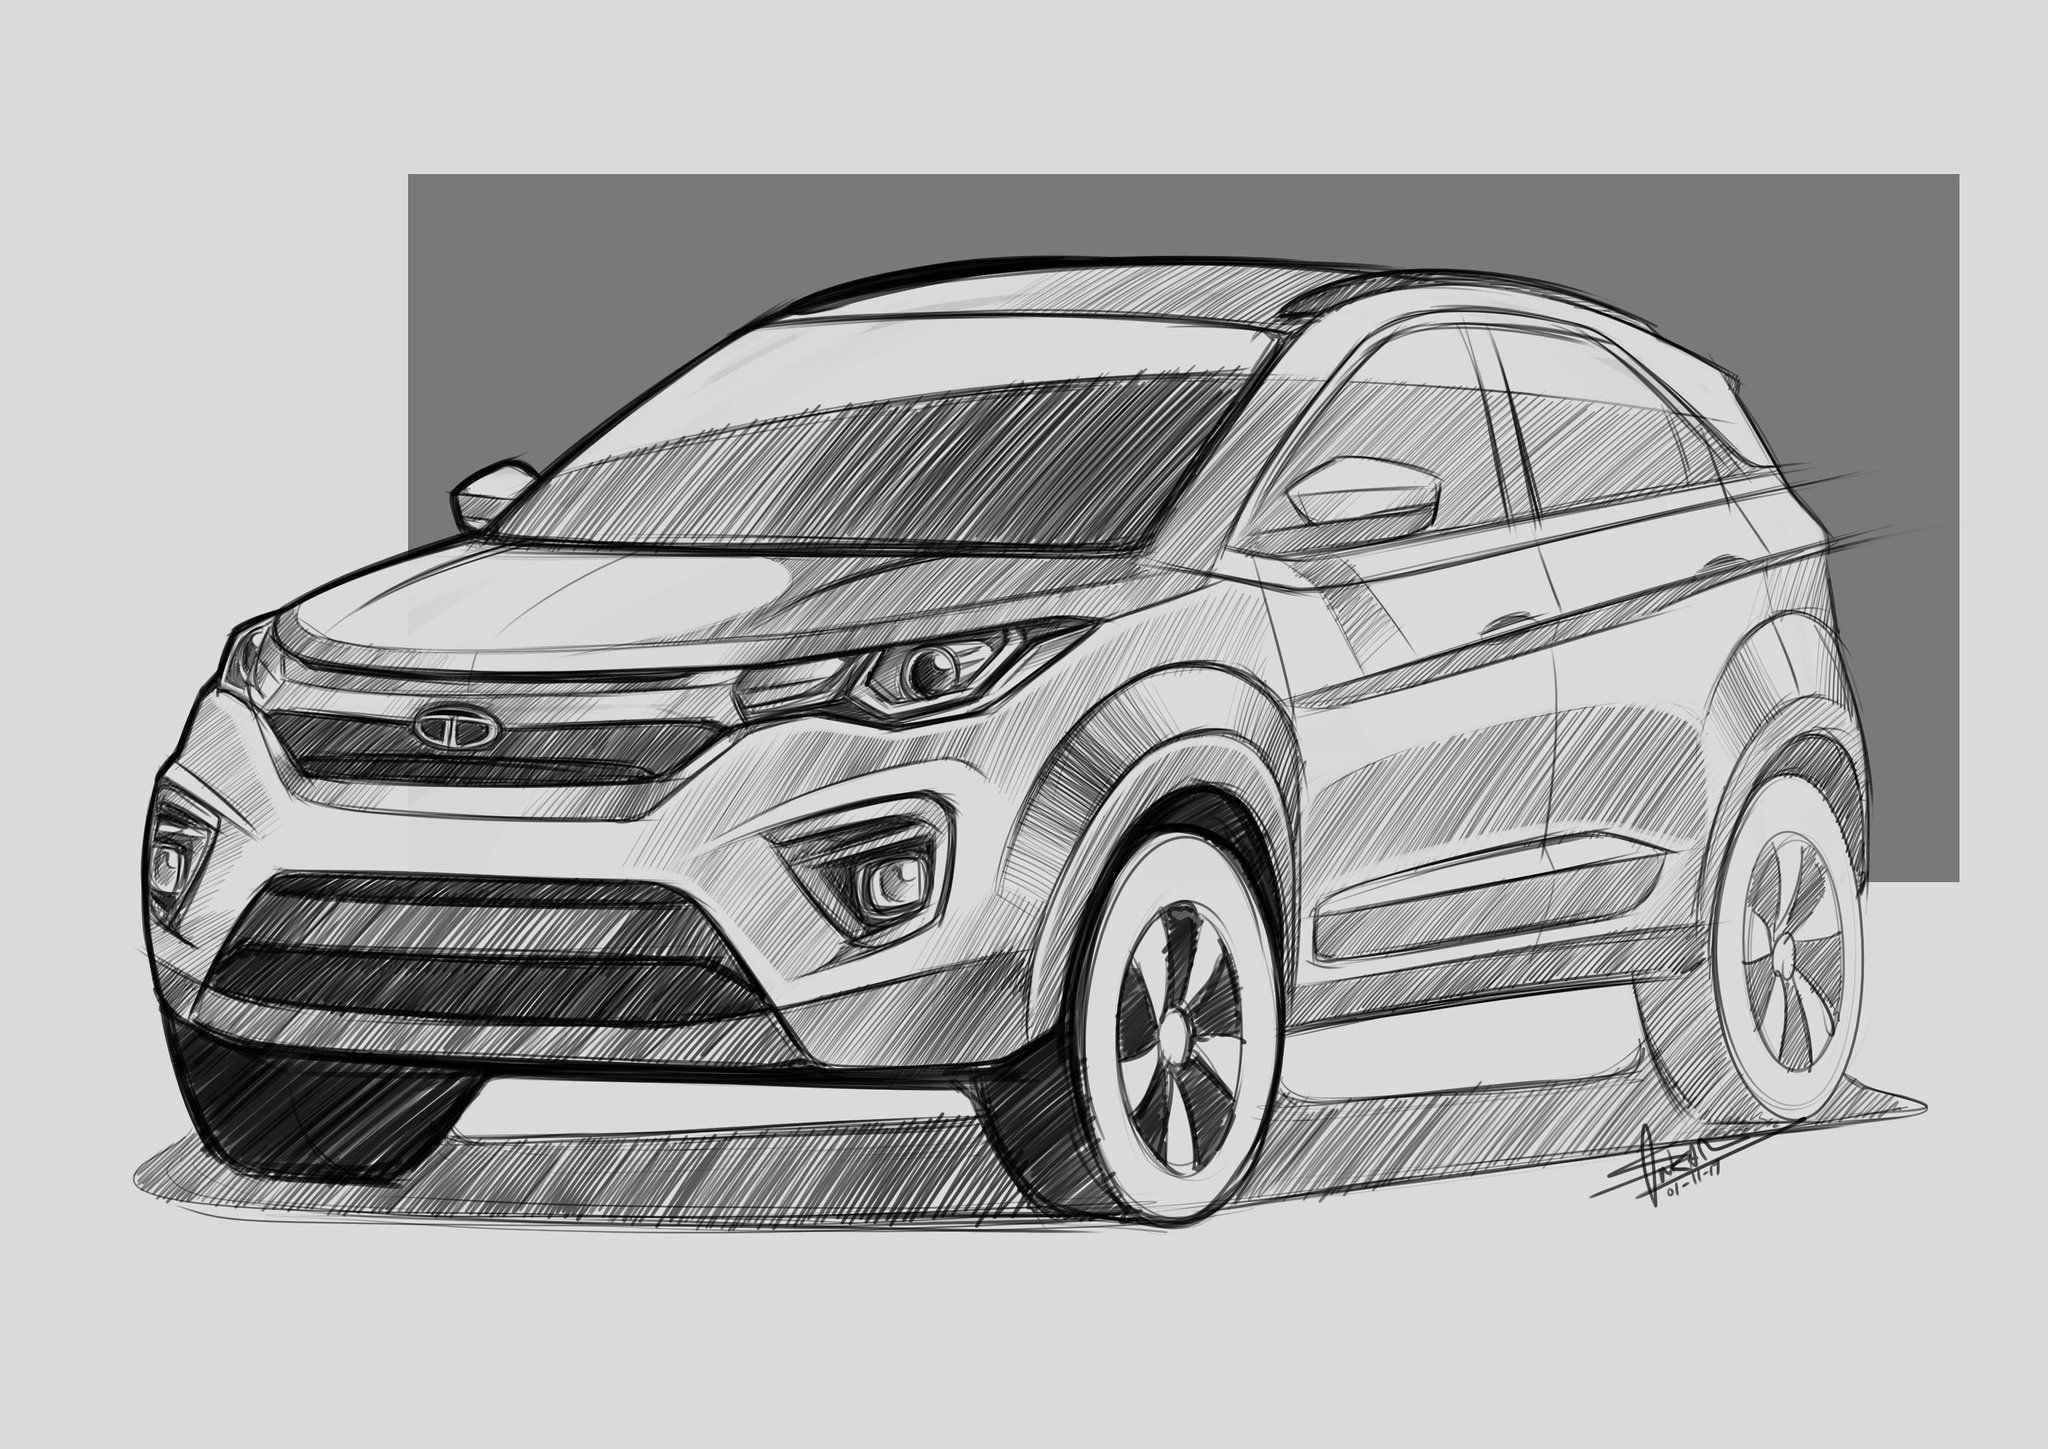 Artist renders the 2020 Facelift of Tata Nexon (With